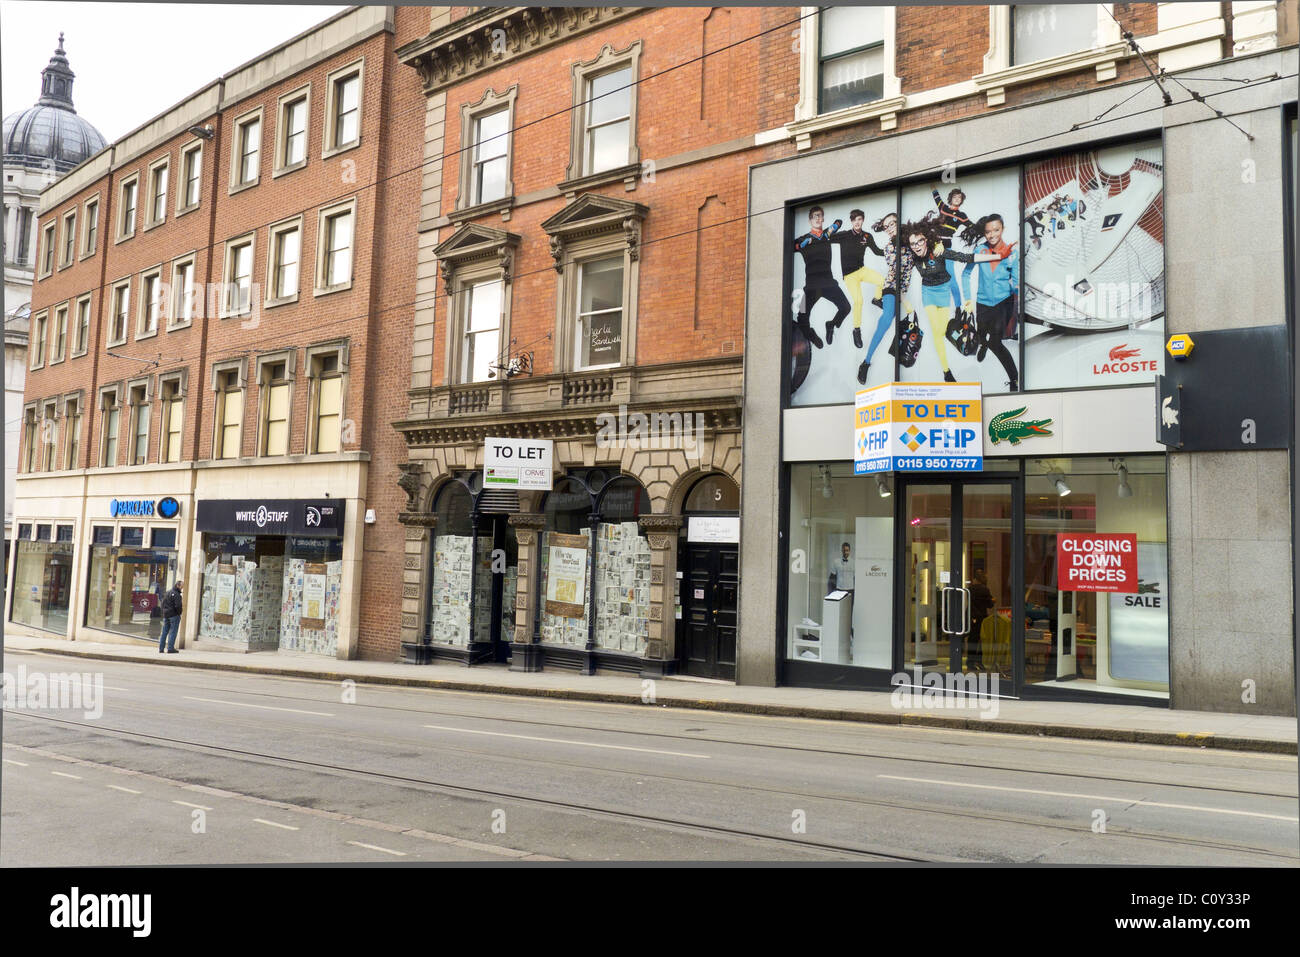 Nottingham shops closed to let in March 2011 during the economic crisis. Lacoste  and White Stuff clothing. - Stock Image